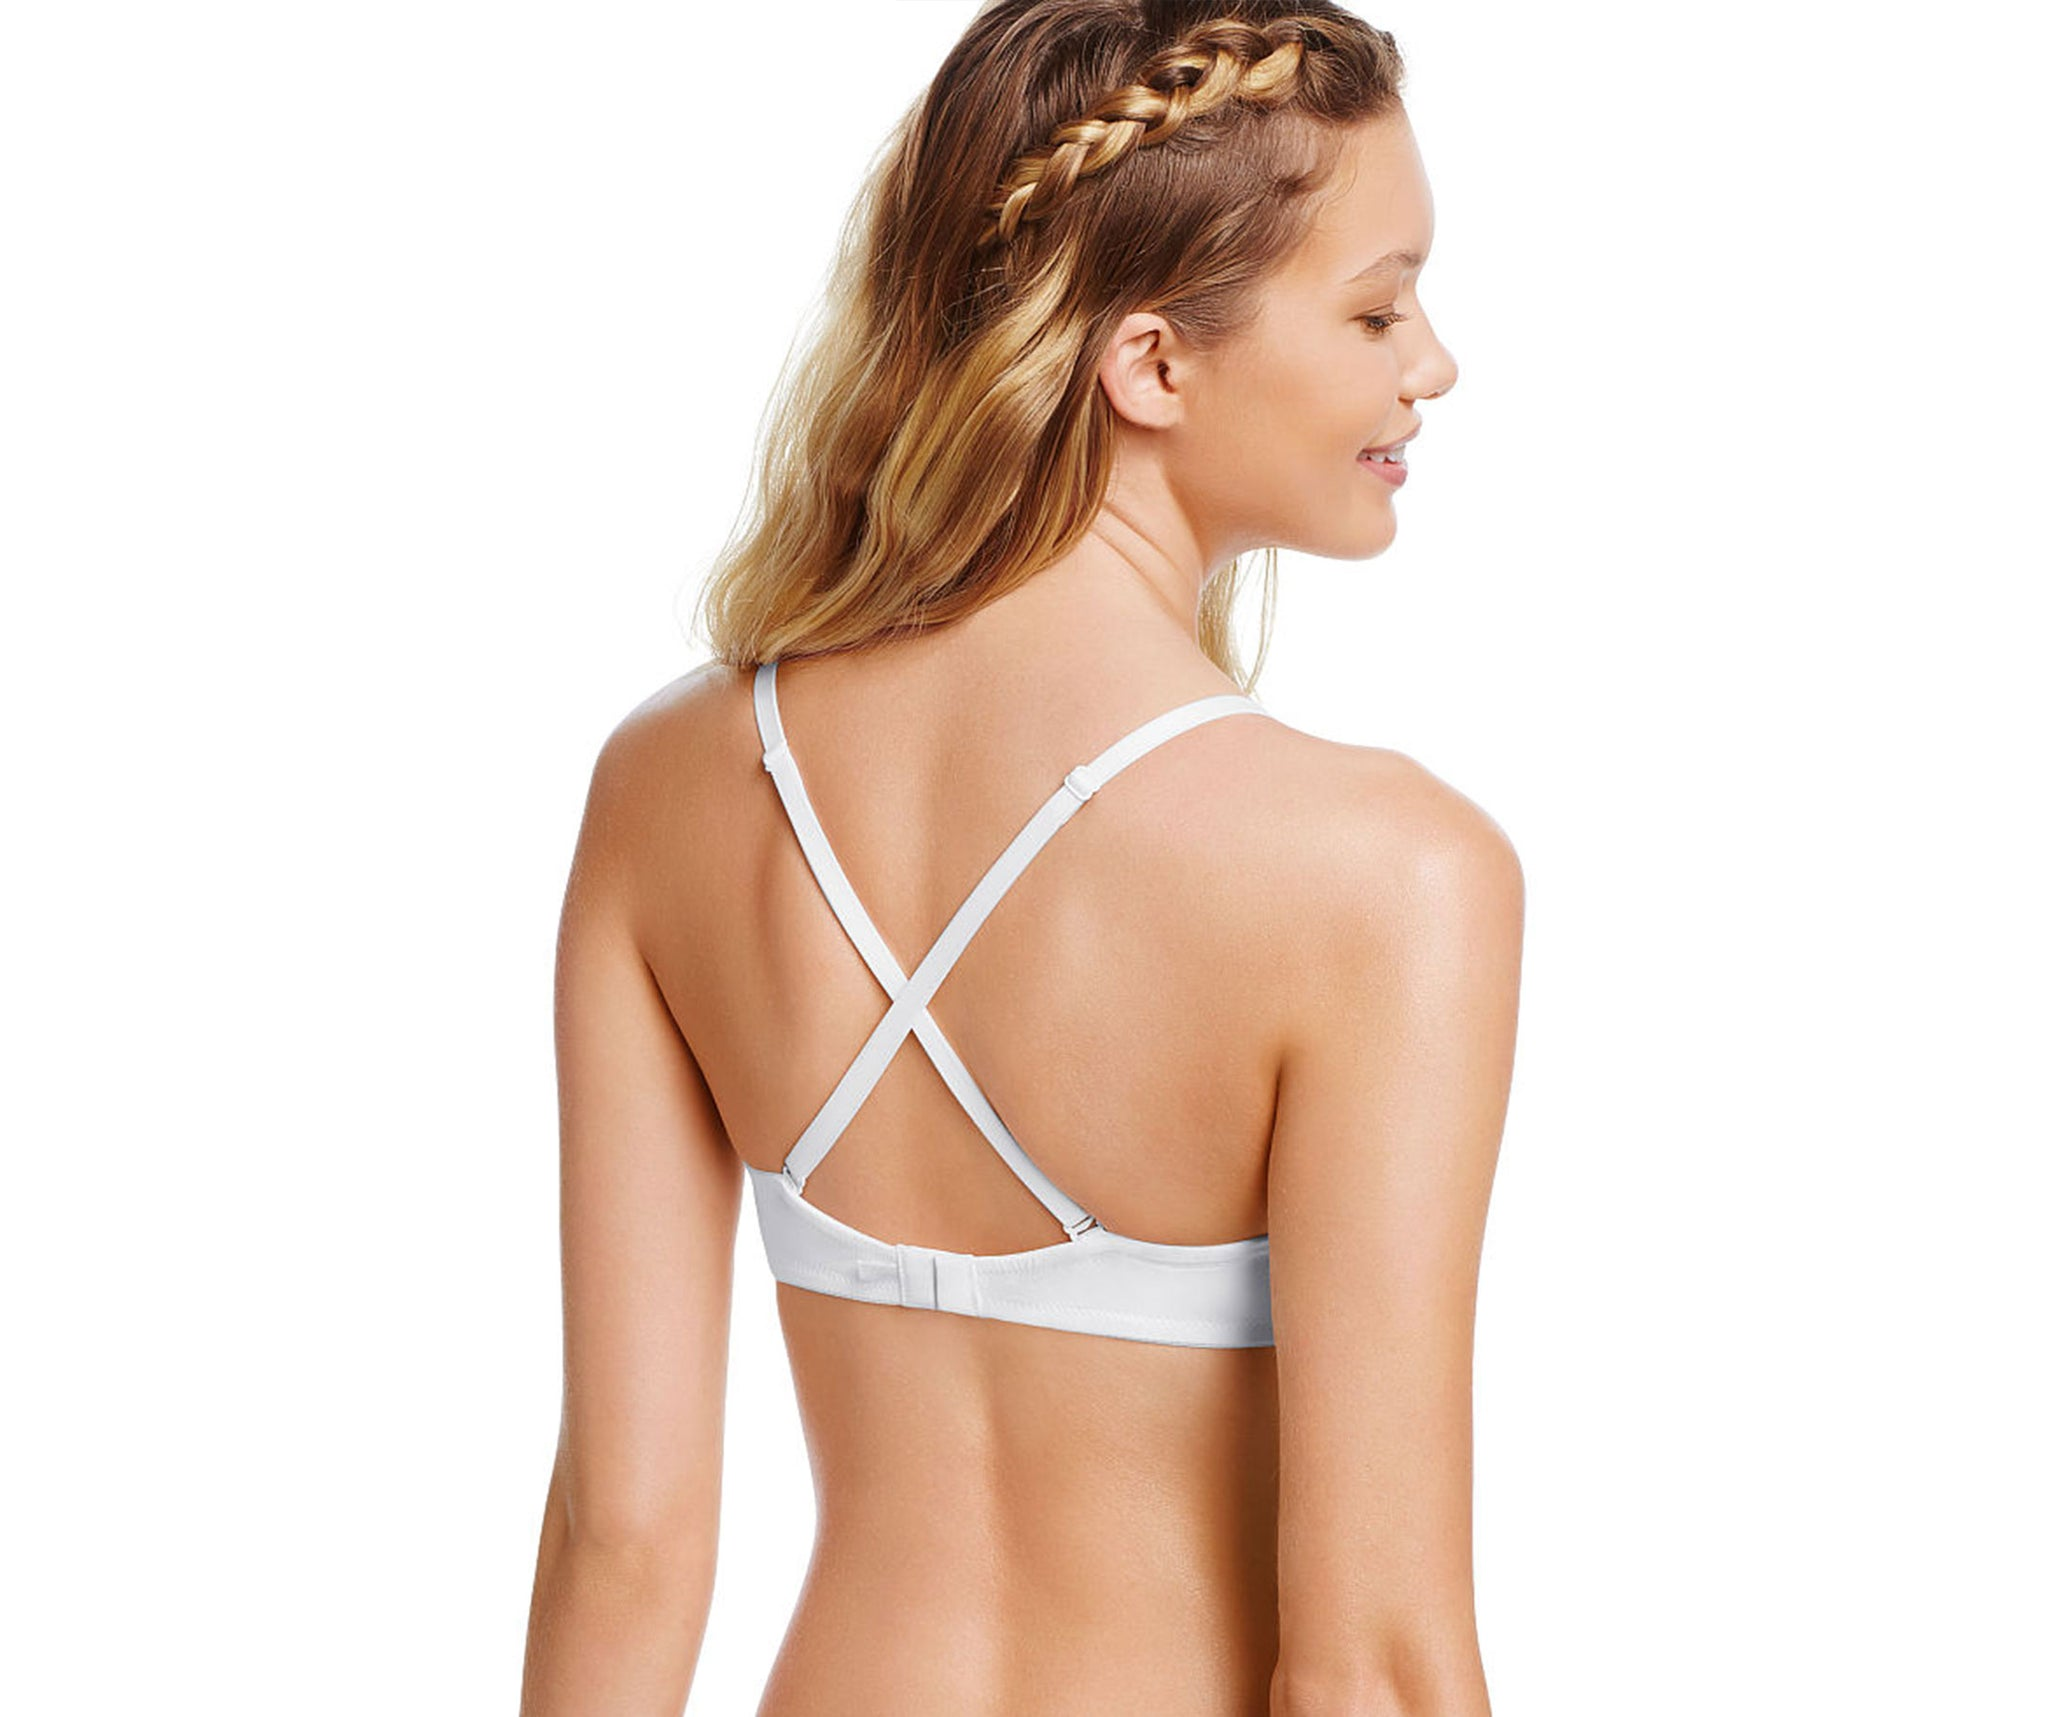 Wear bra how to multiway images